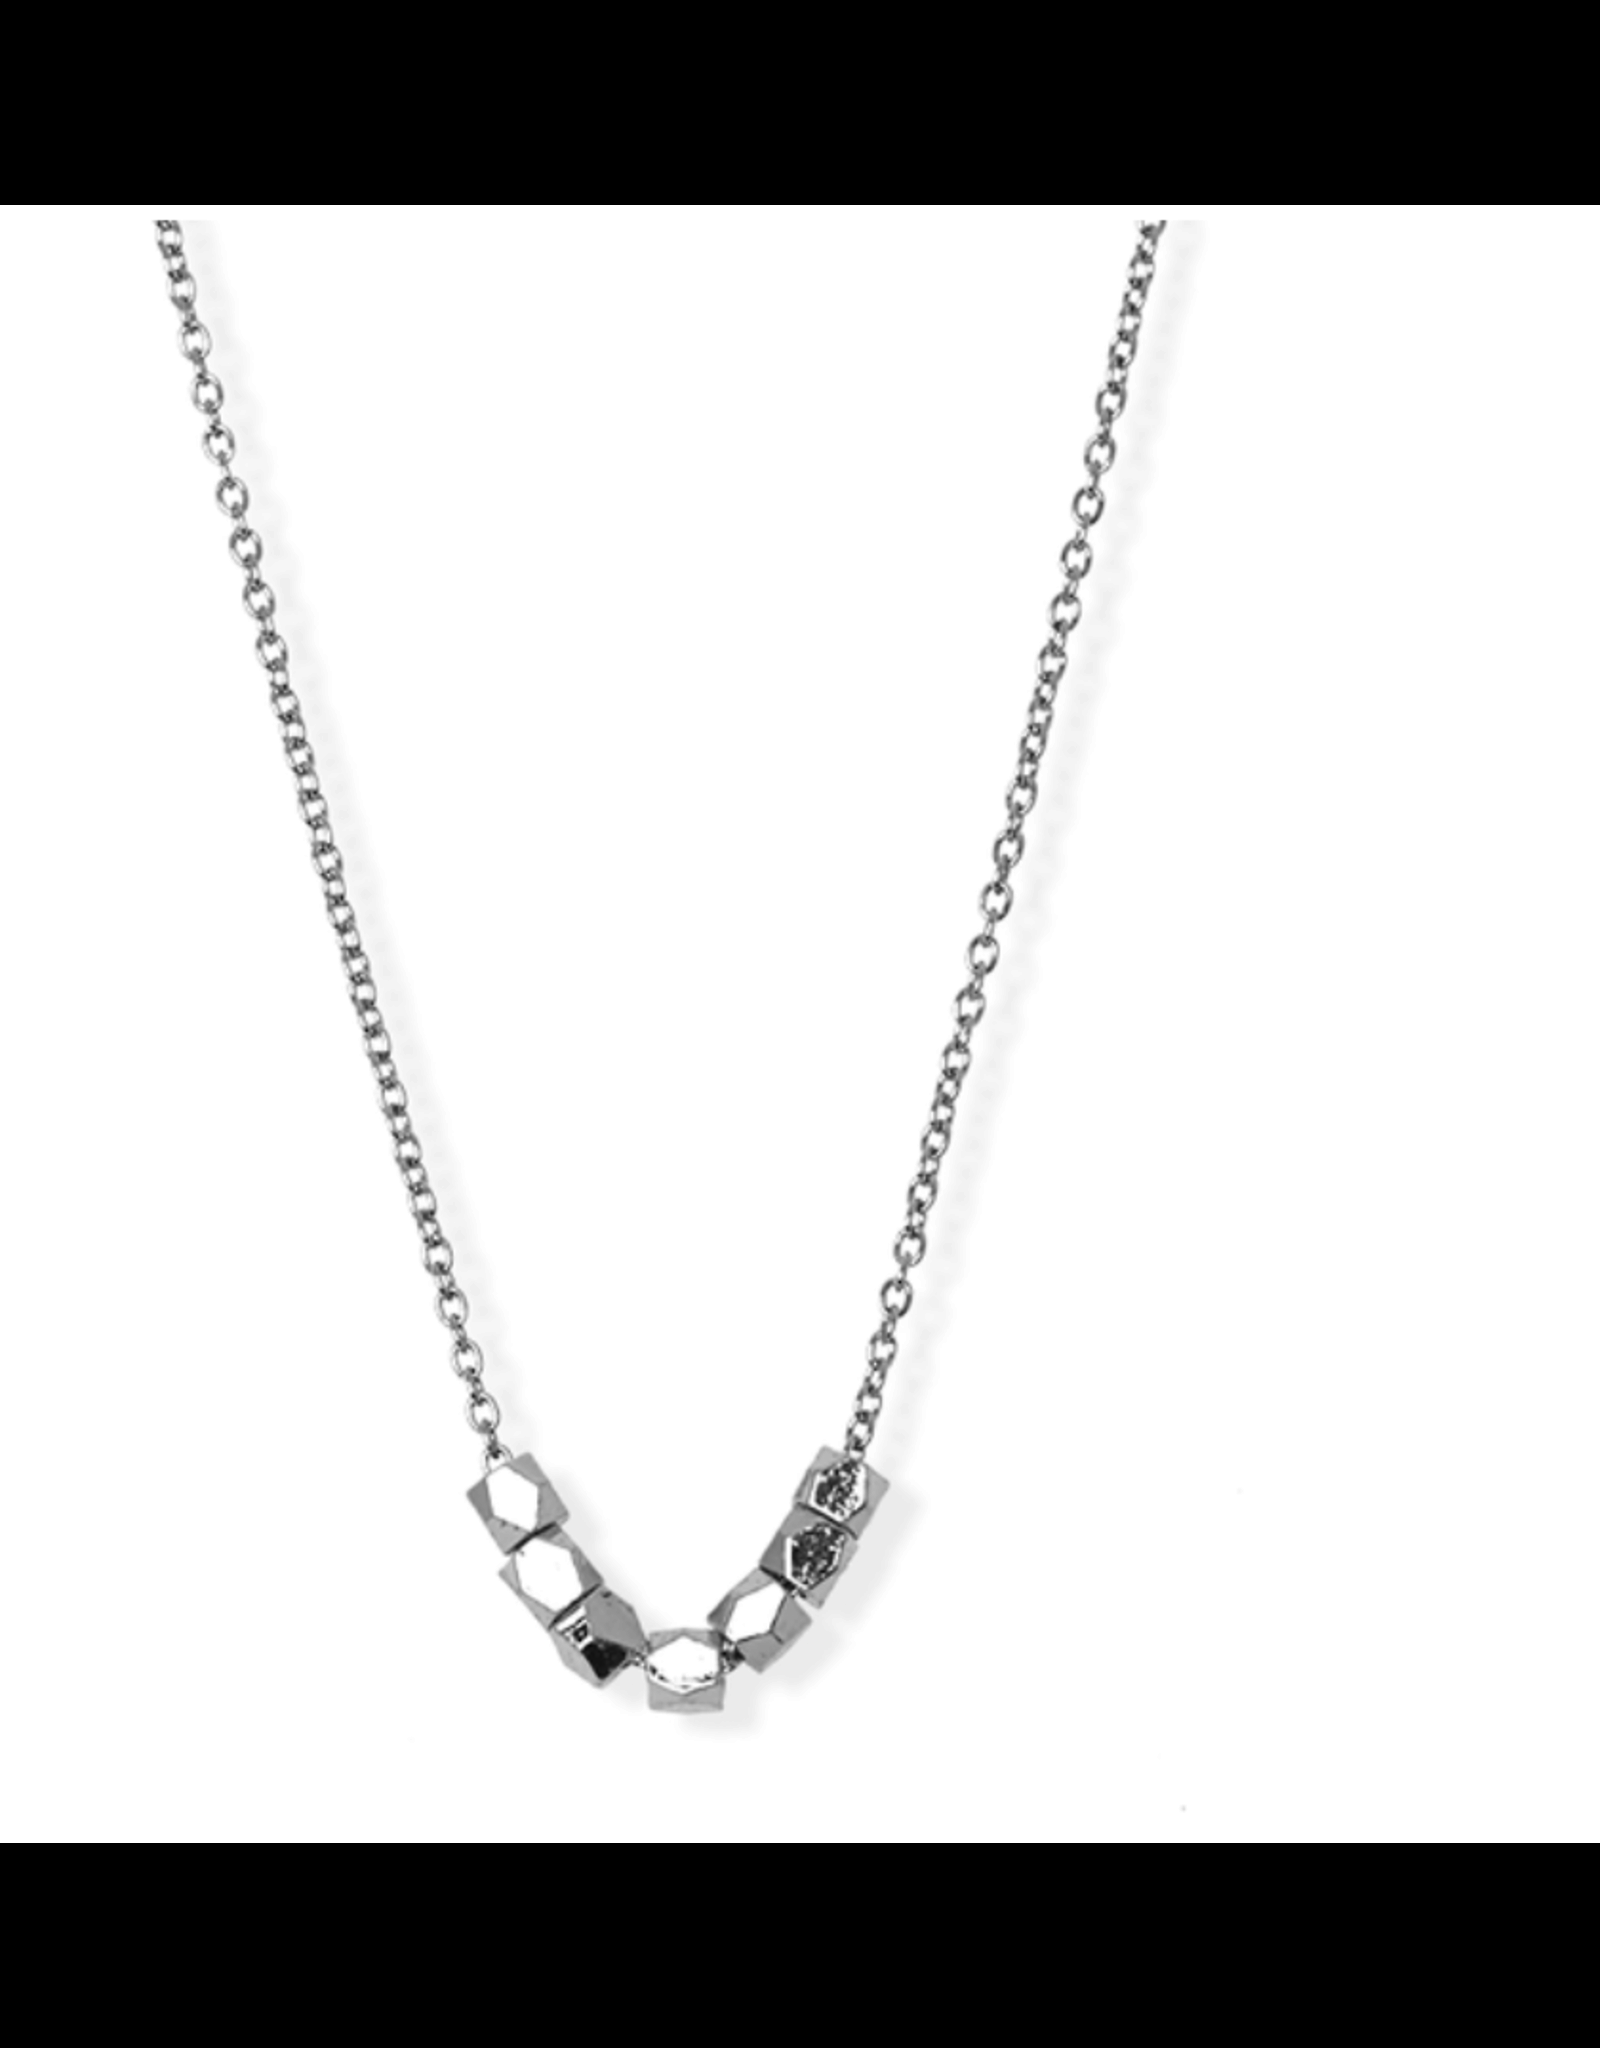 jj + rr Faceted Bead Necklace Silver